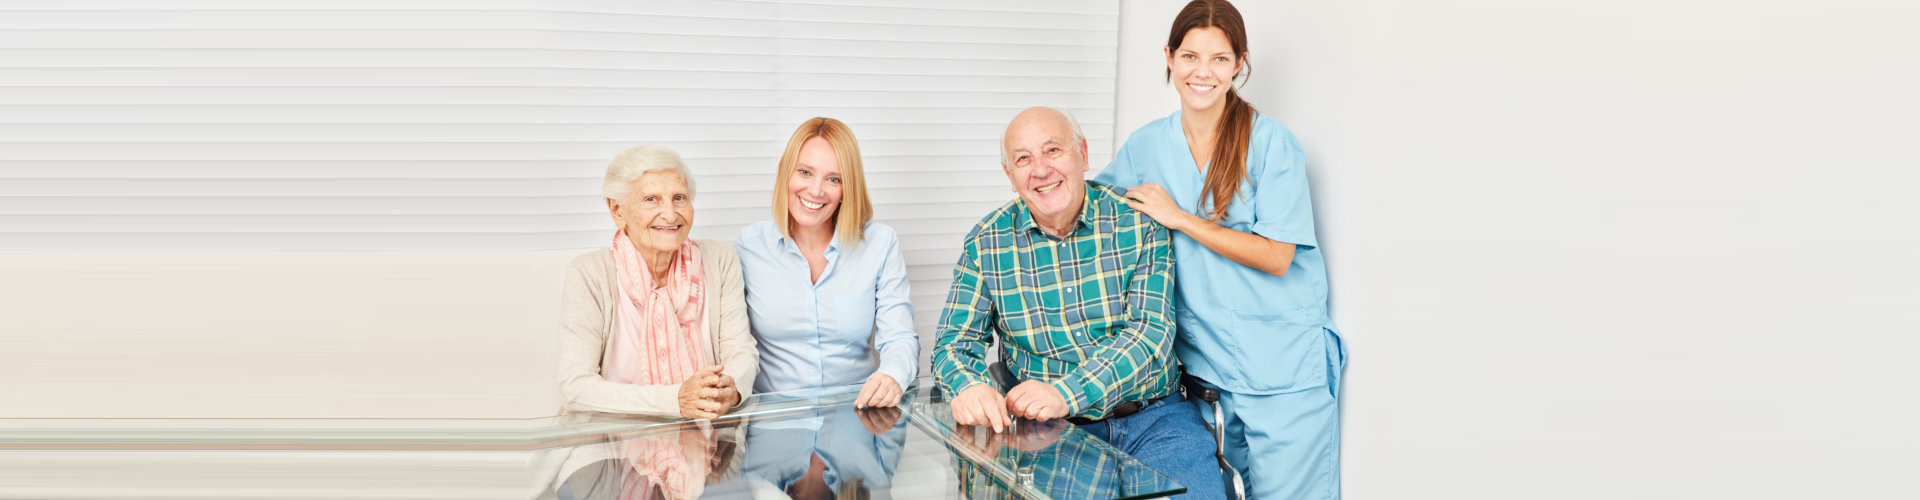 senior couple with adult woman and caregiver smiling